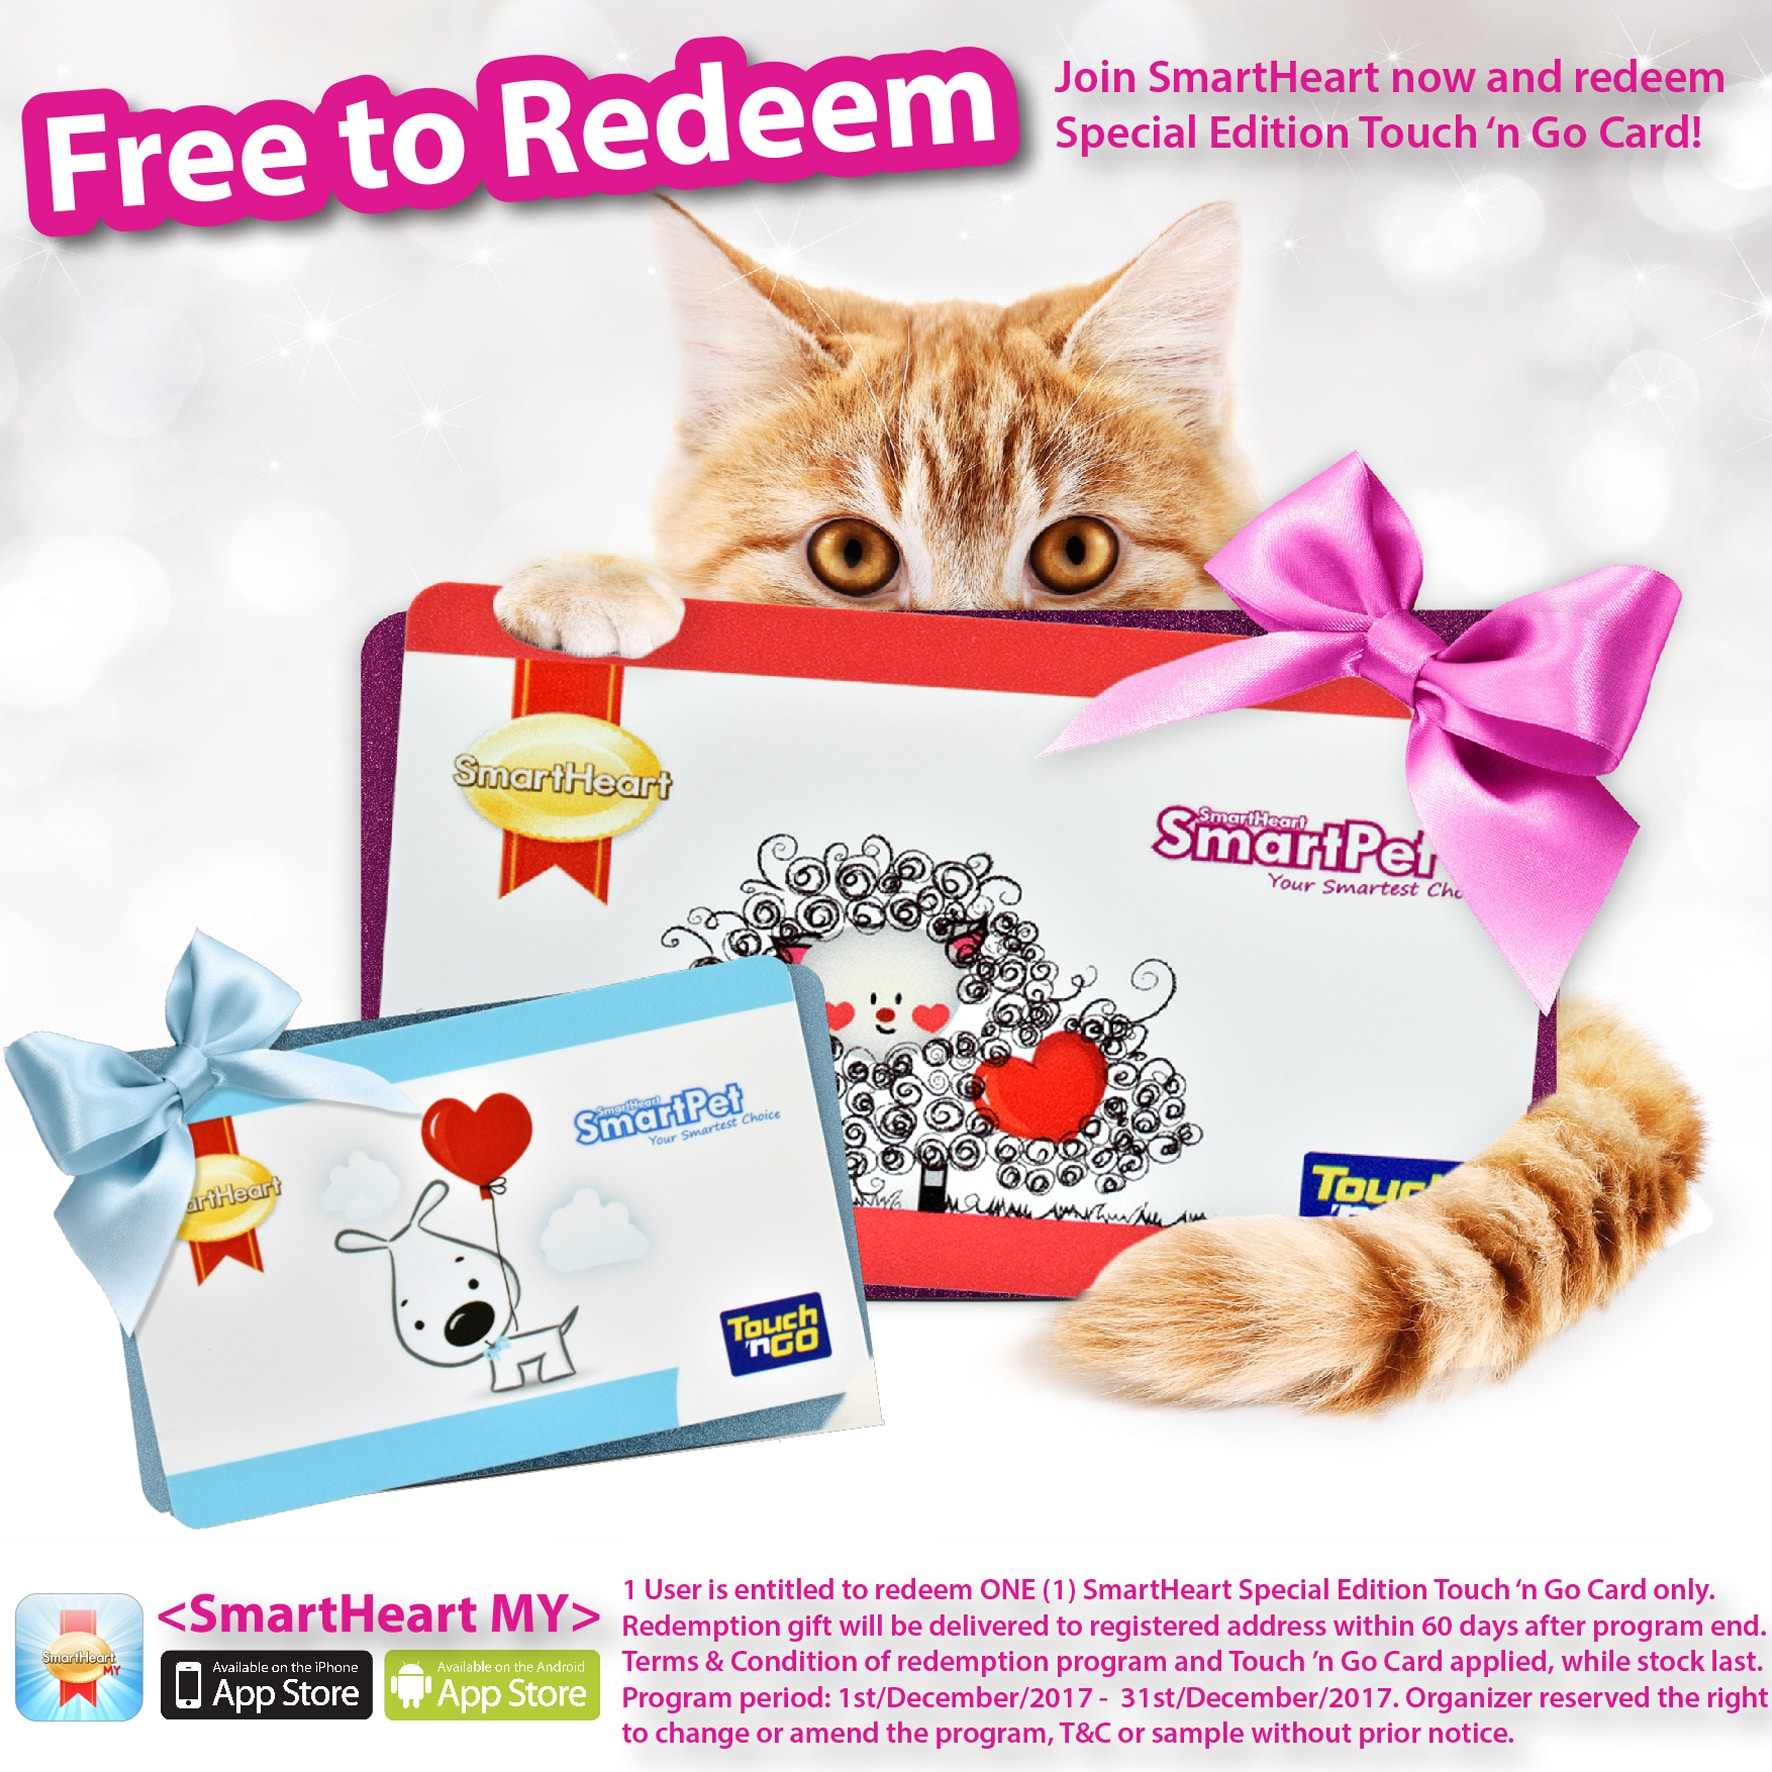 Limited Edition SmartHeart Touch & Go Card Giveaway! (1st – 31st Dec 2017)